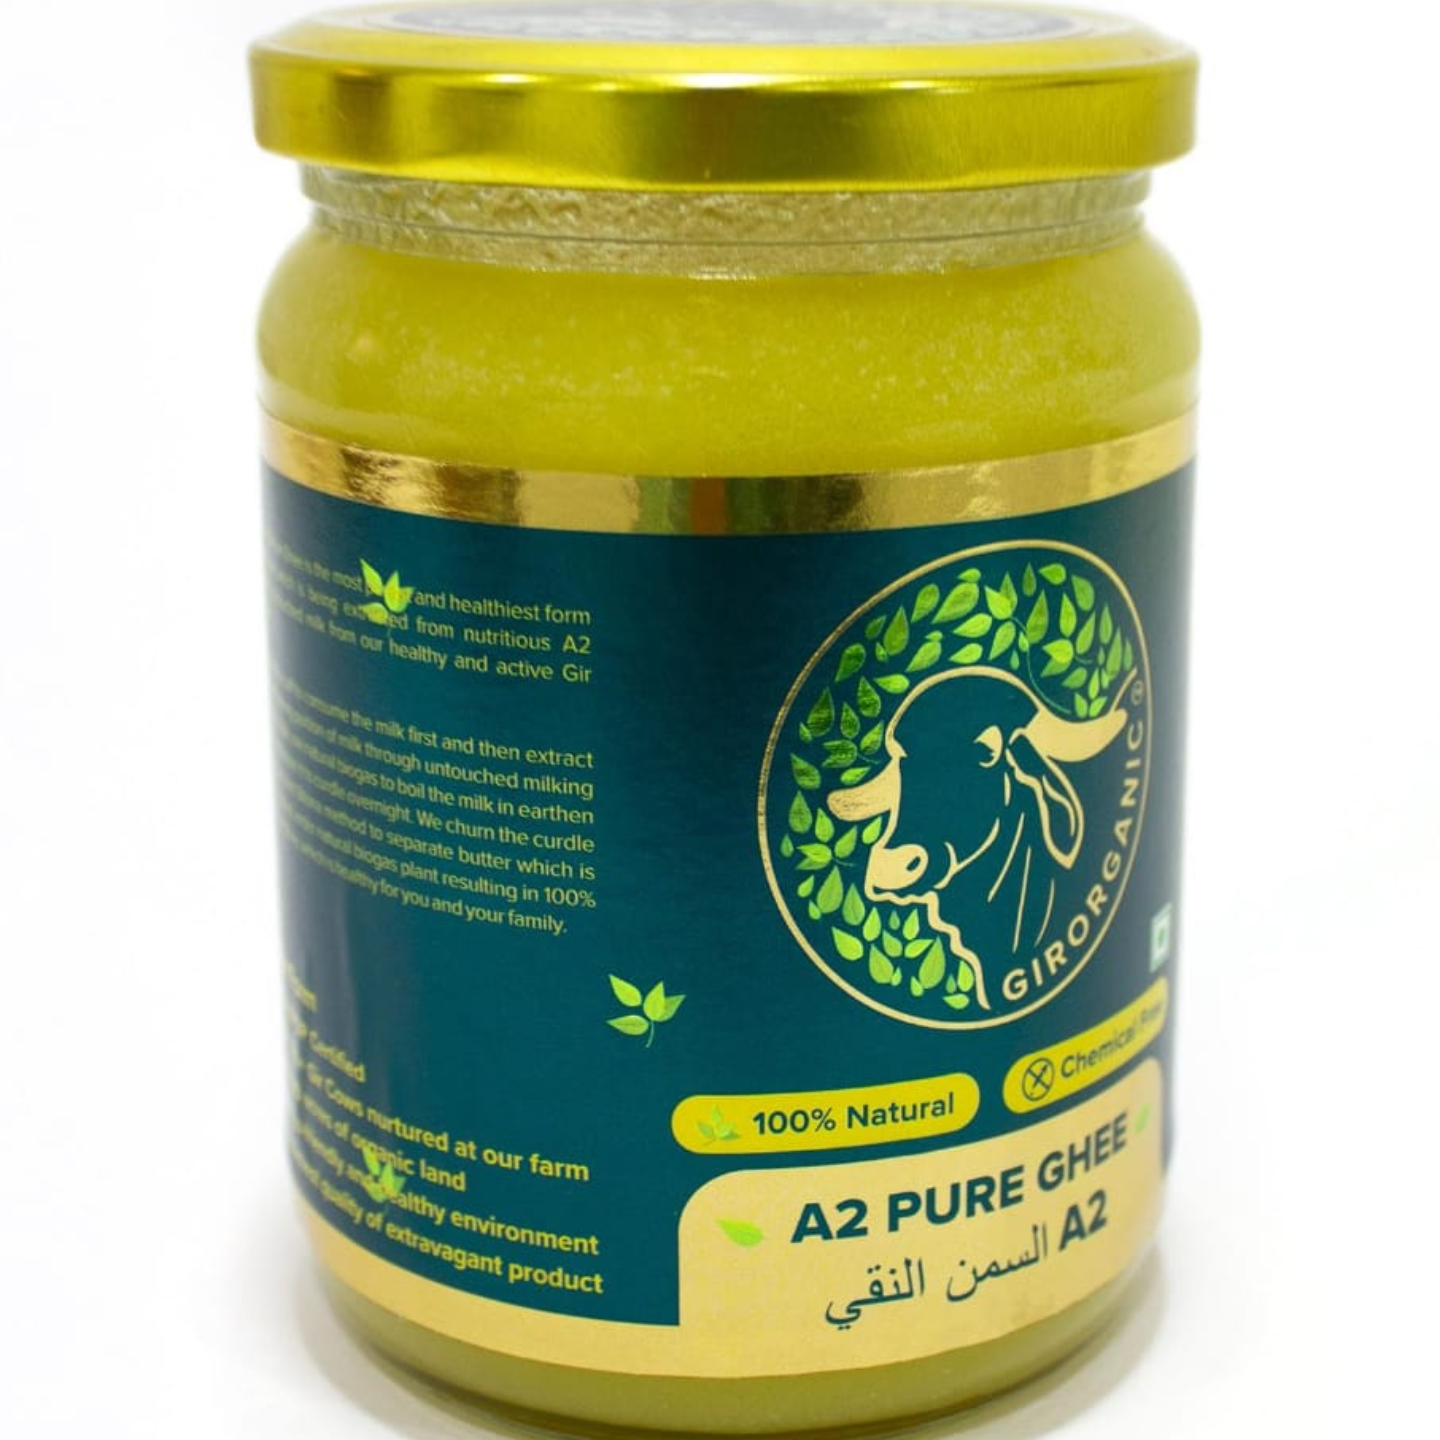 Gir Cow - Pure Ghee